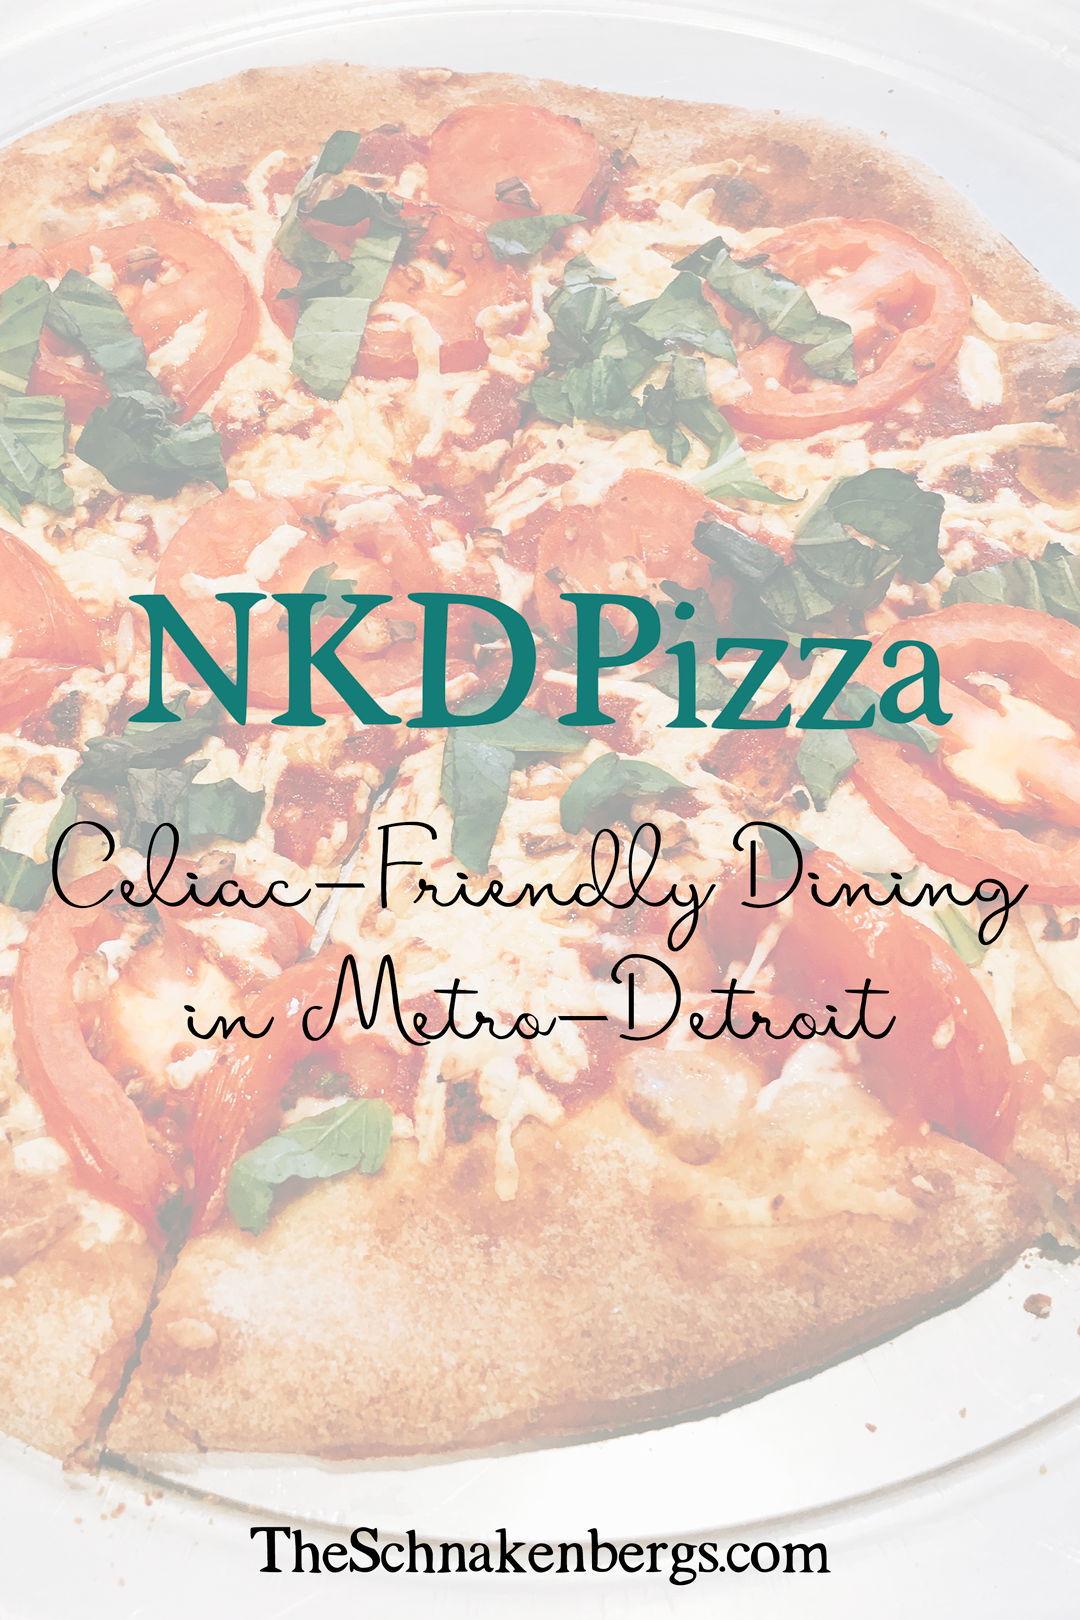 NKD Pizza Celiac-Friendly Dining in Metro-Detroit